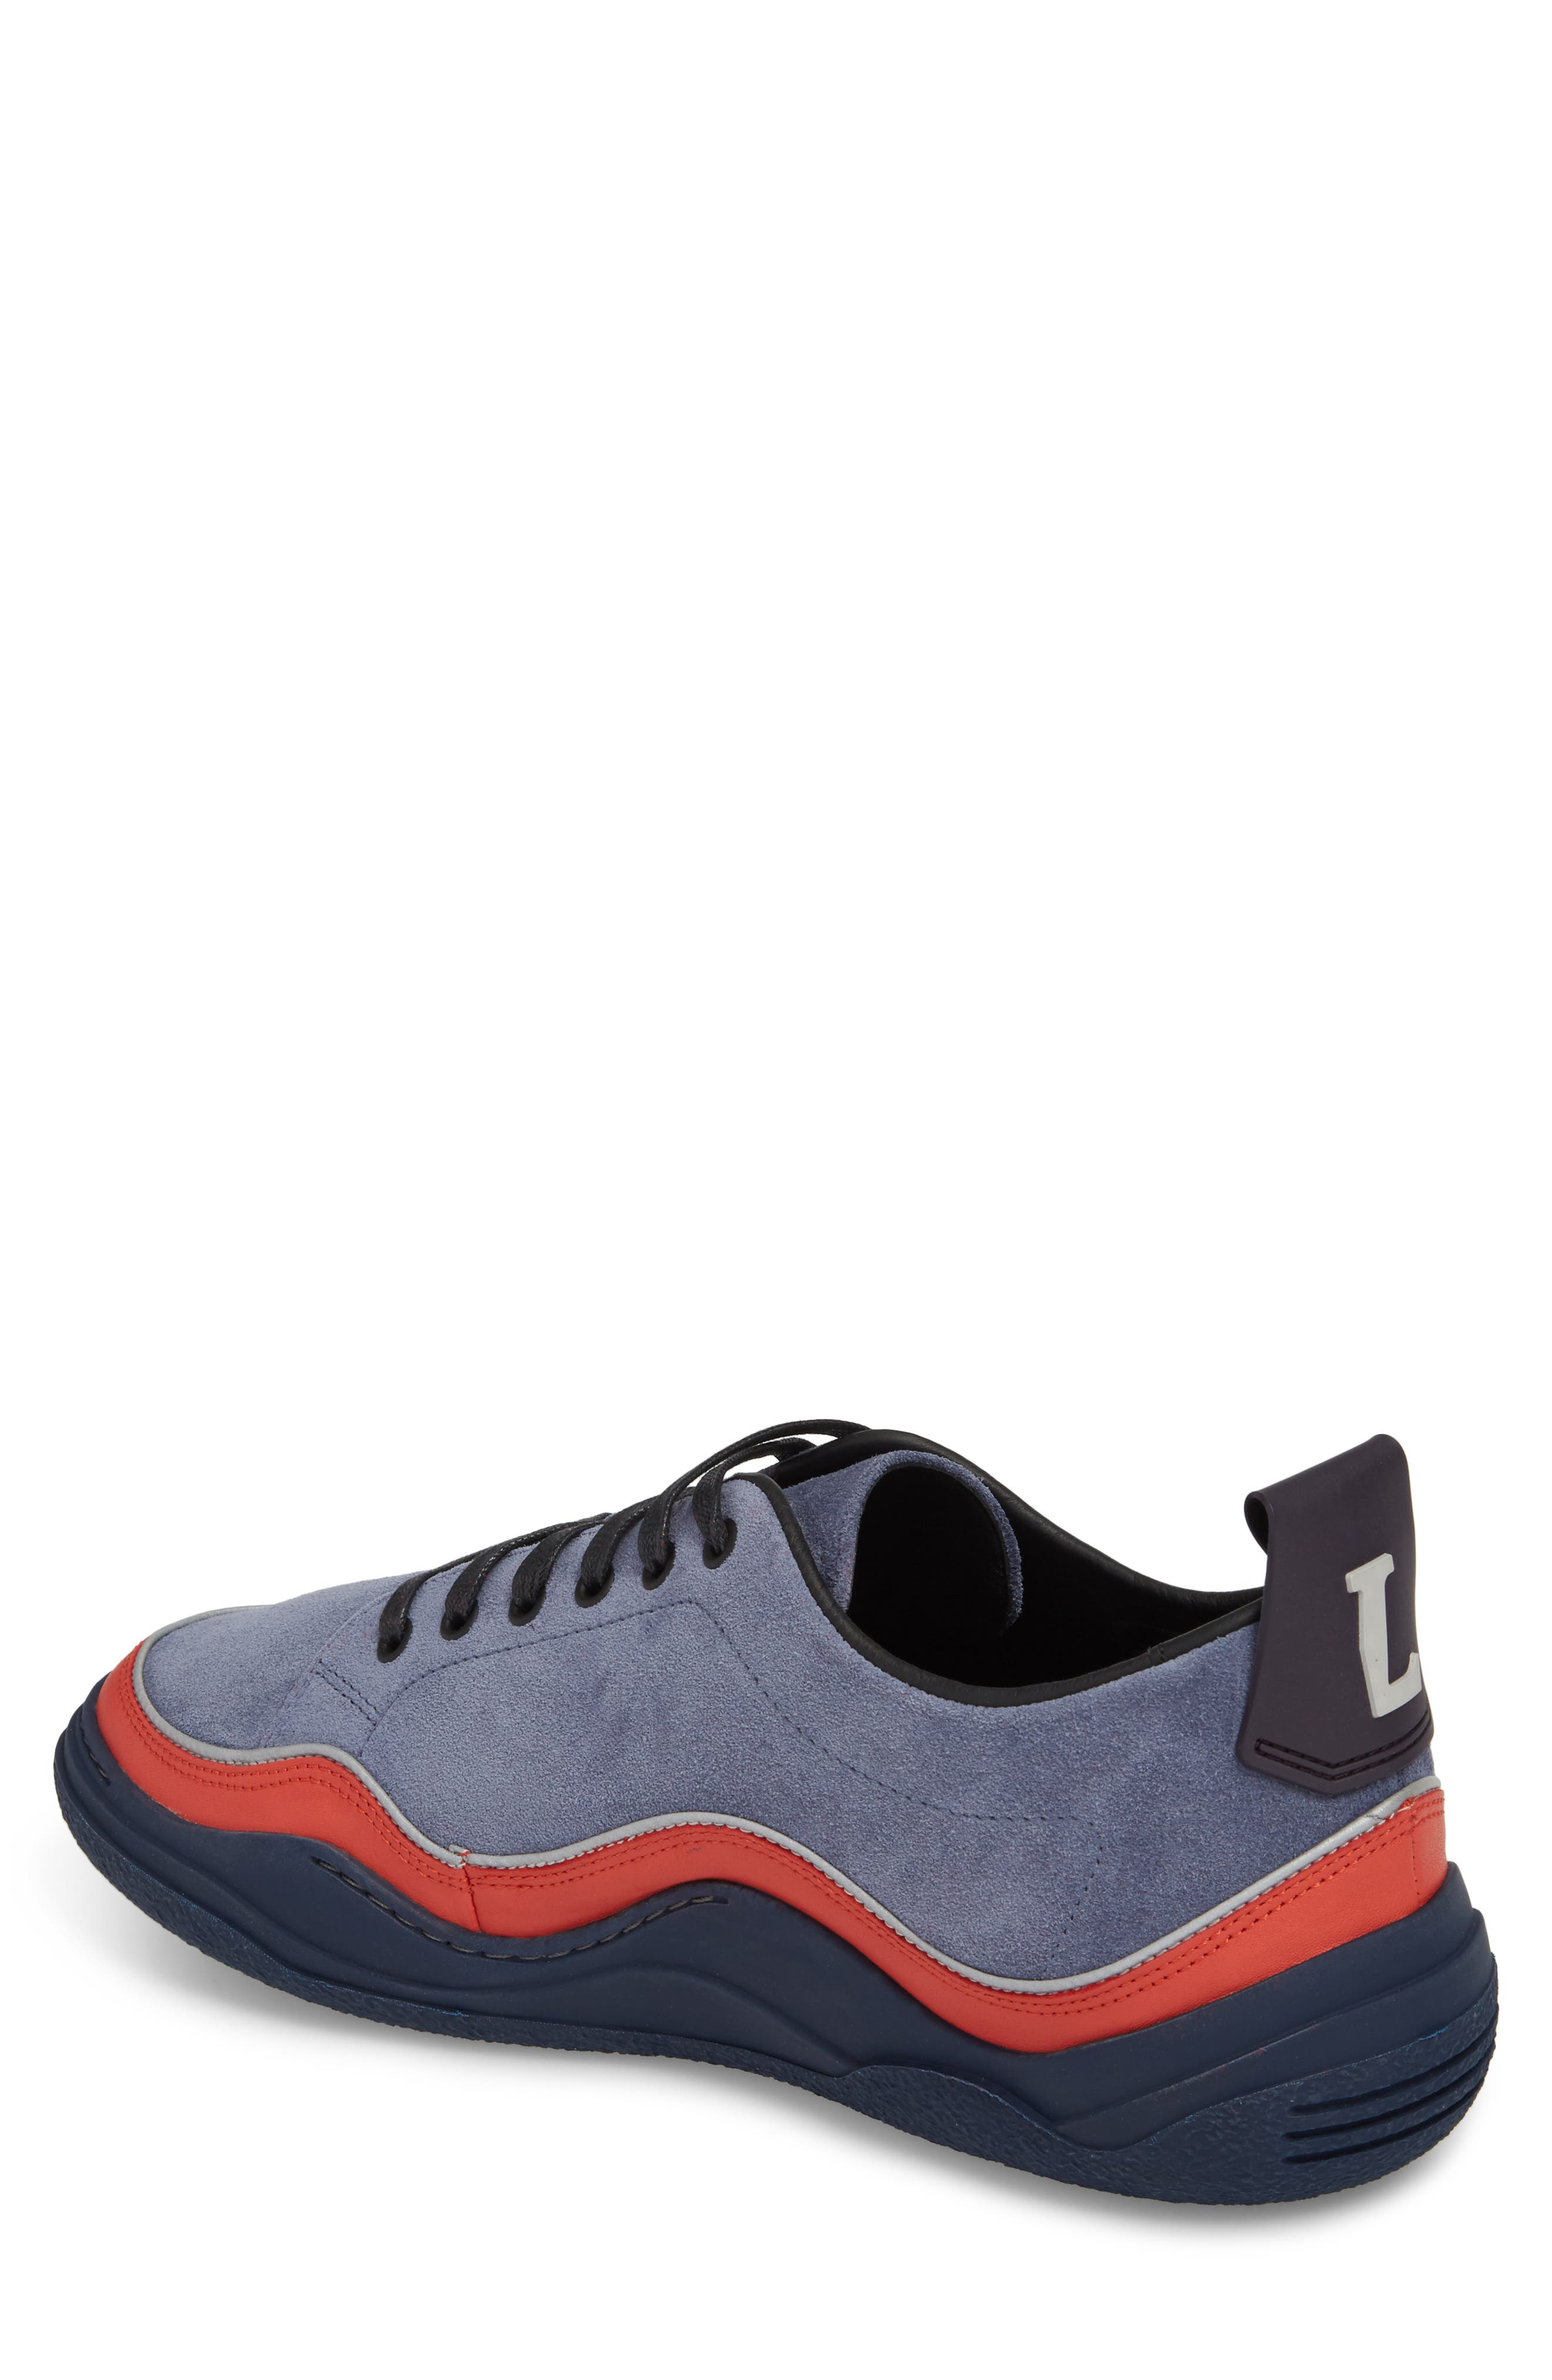 LANVIN,                             Diving Sneaker,                             Alternate thumbnail 2, color,                             450